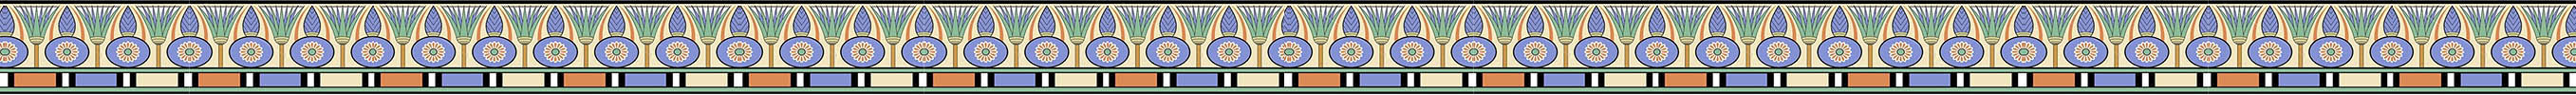 Egyptian decorative border